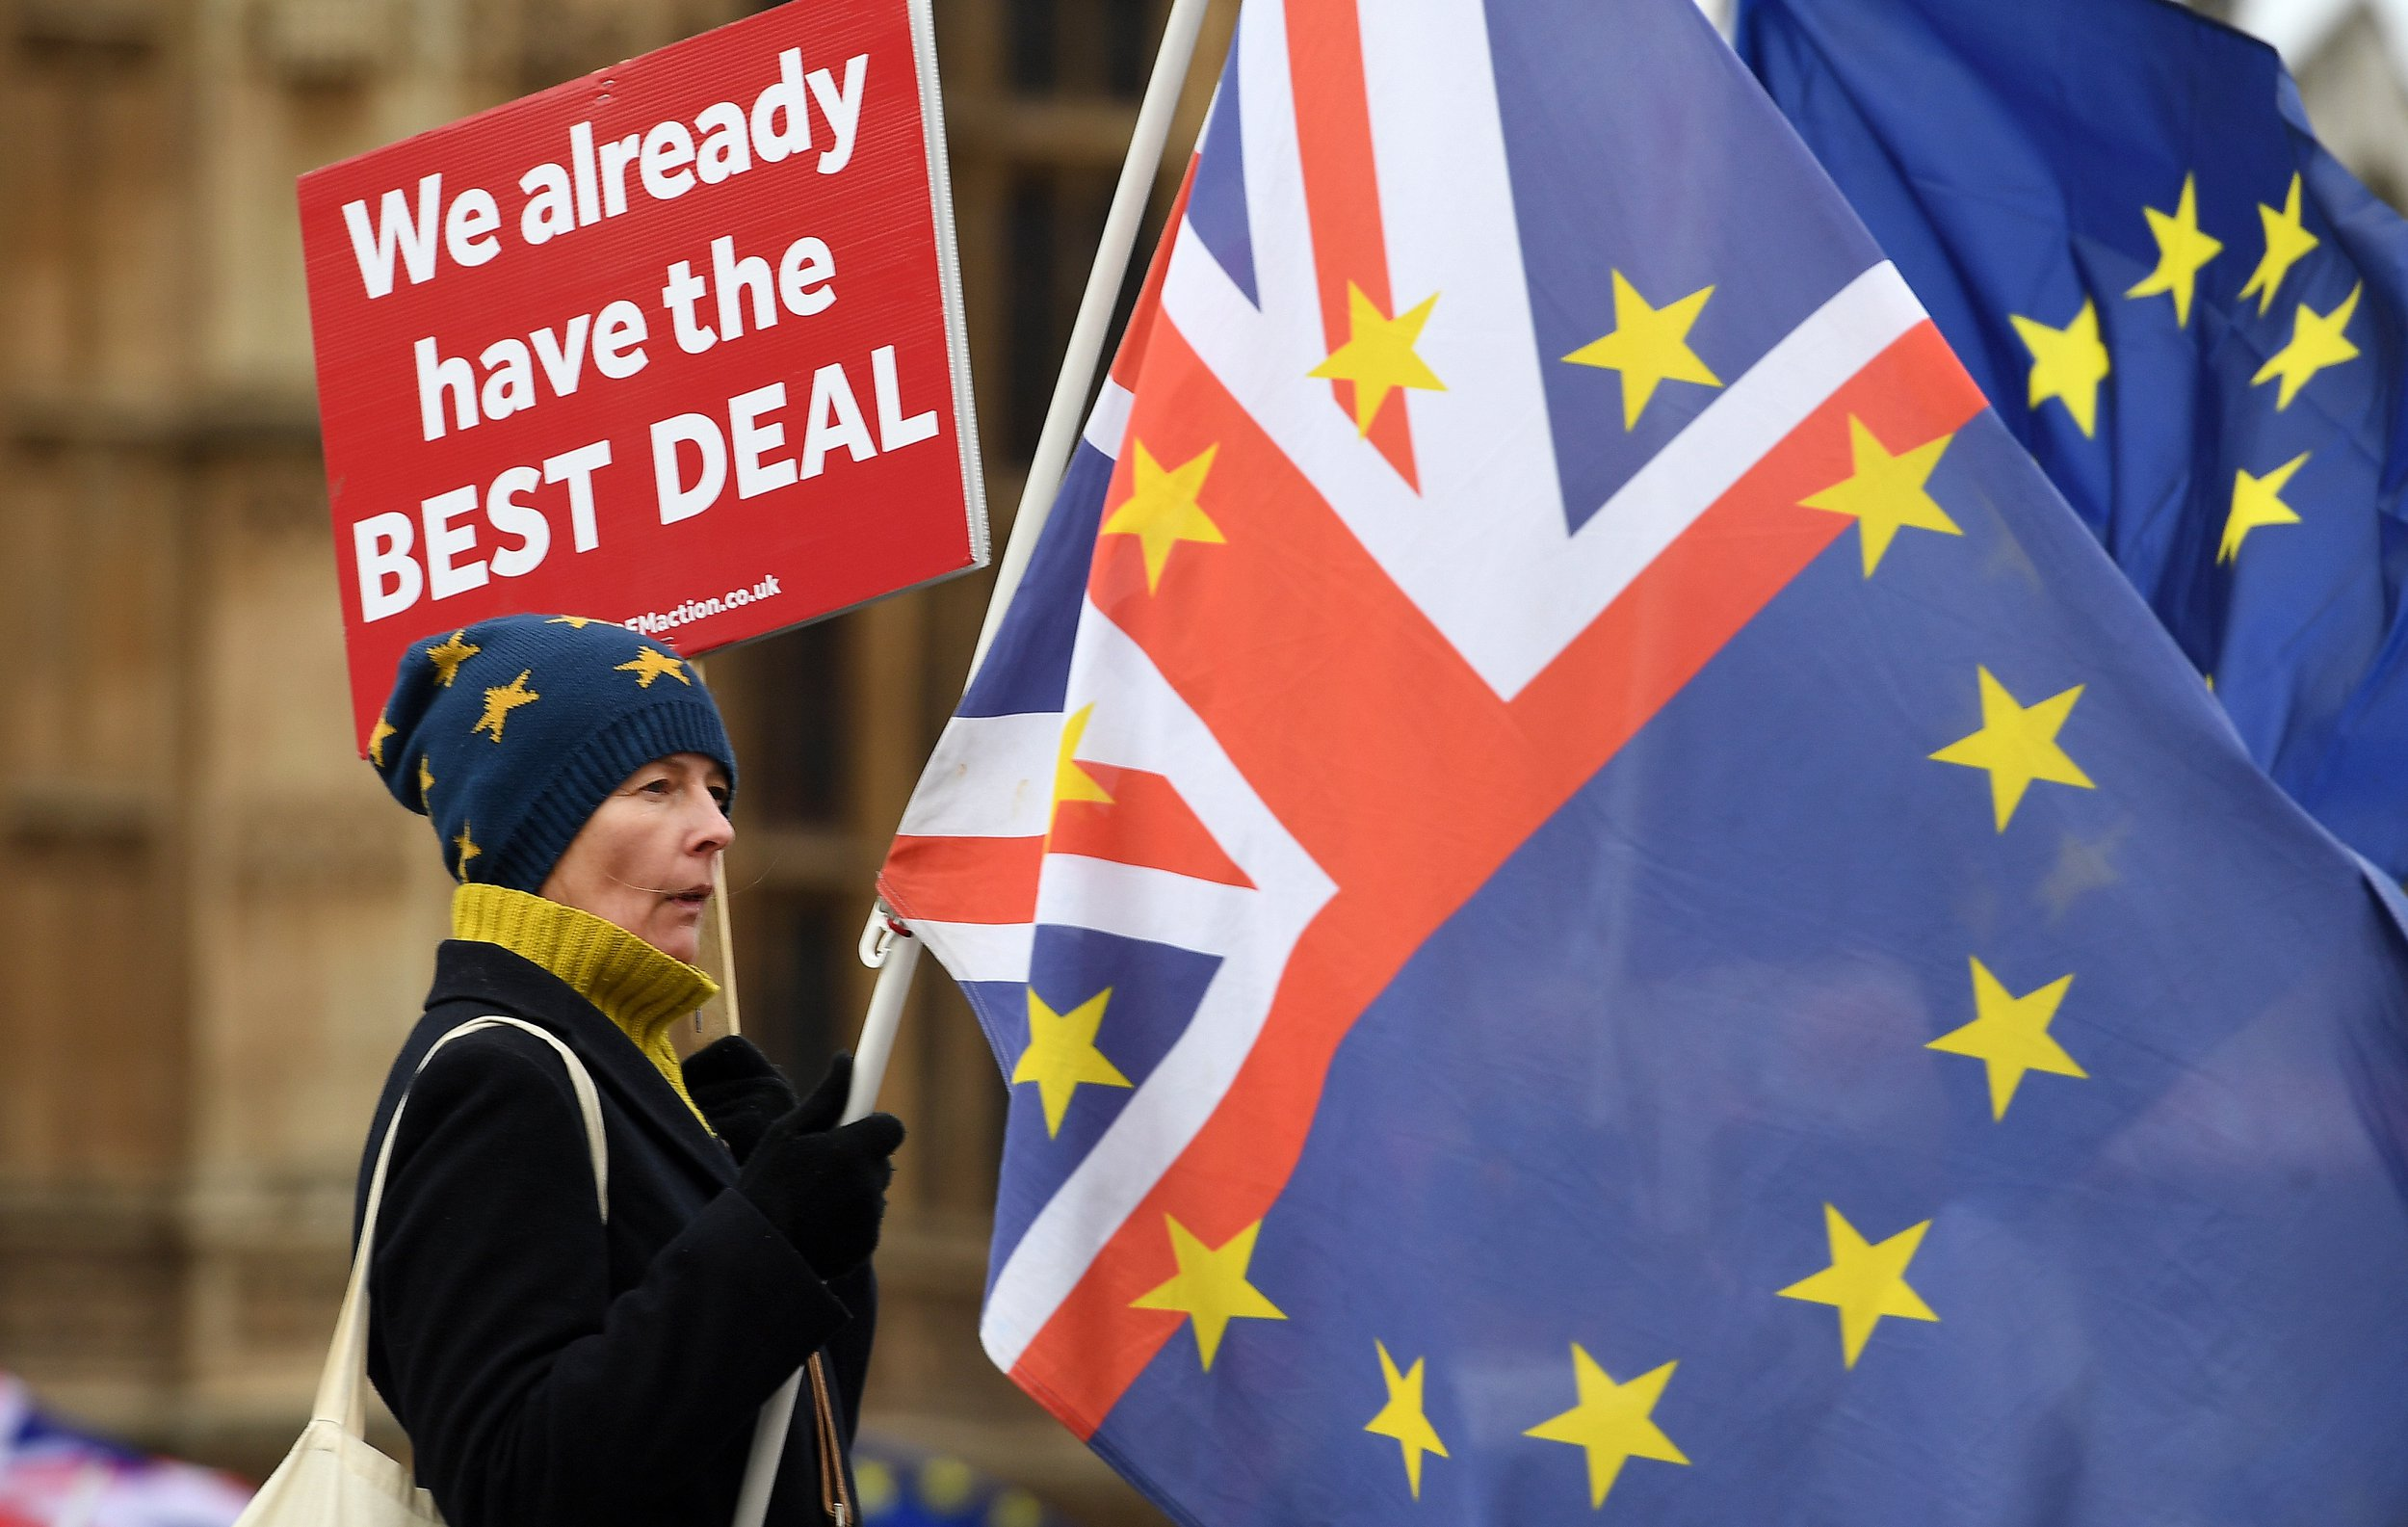 epa07238493 Pro EU protesters demonstrate outside of the parliament calling for a People's Vote in London, Britain, 18 December 2018. It is one hundred days to Brexit. Britain will leave the European Union 29 March. Britain's opposition Labour Party leader Jeremy Corbyn has tabled a motion of no confidence in Prime Minister Theresa May, after she said MPs would not vote on the Brexit deal until 14 January 2019. EPA/ANDY RAIN